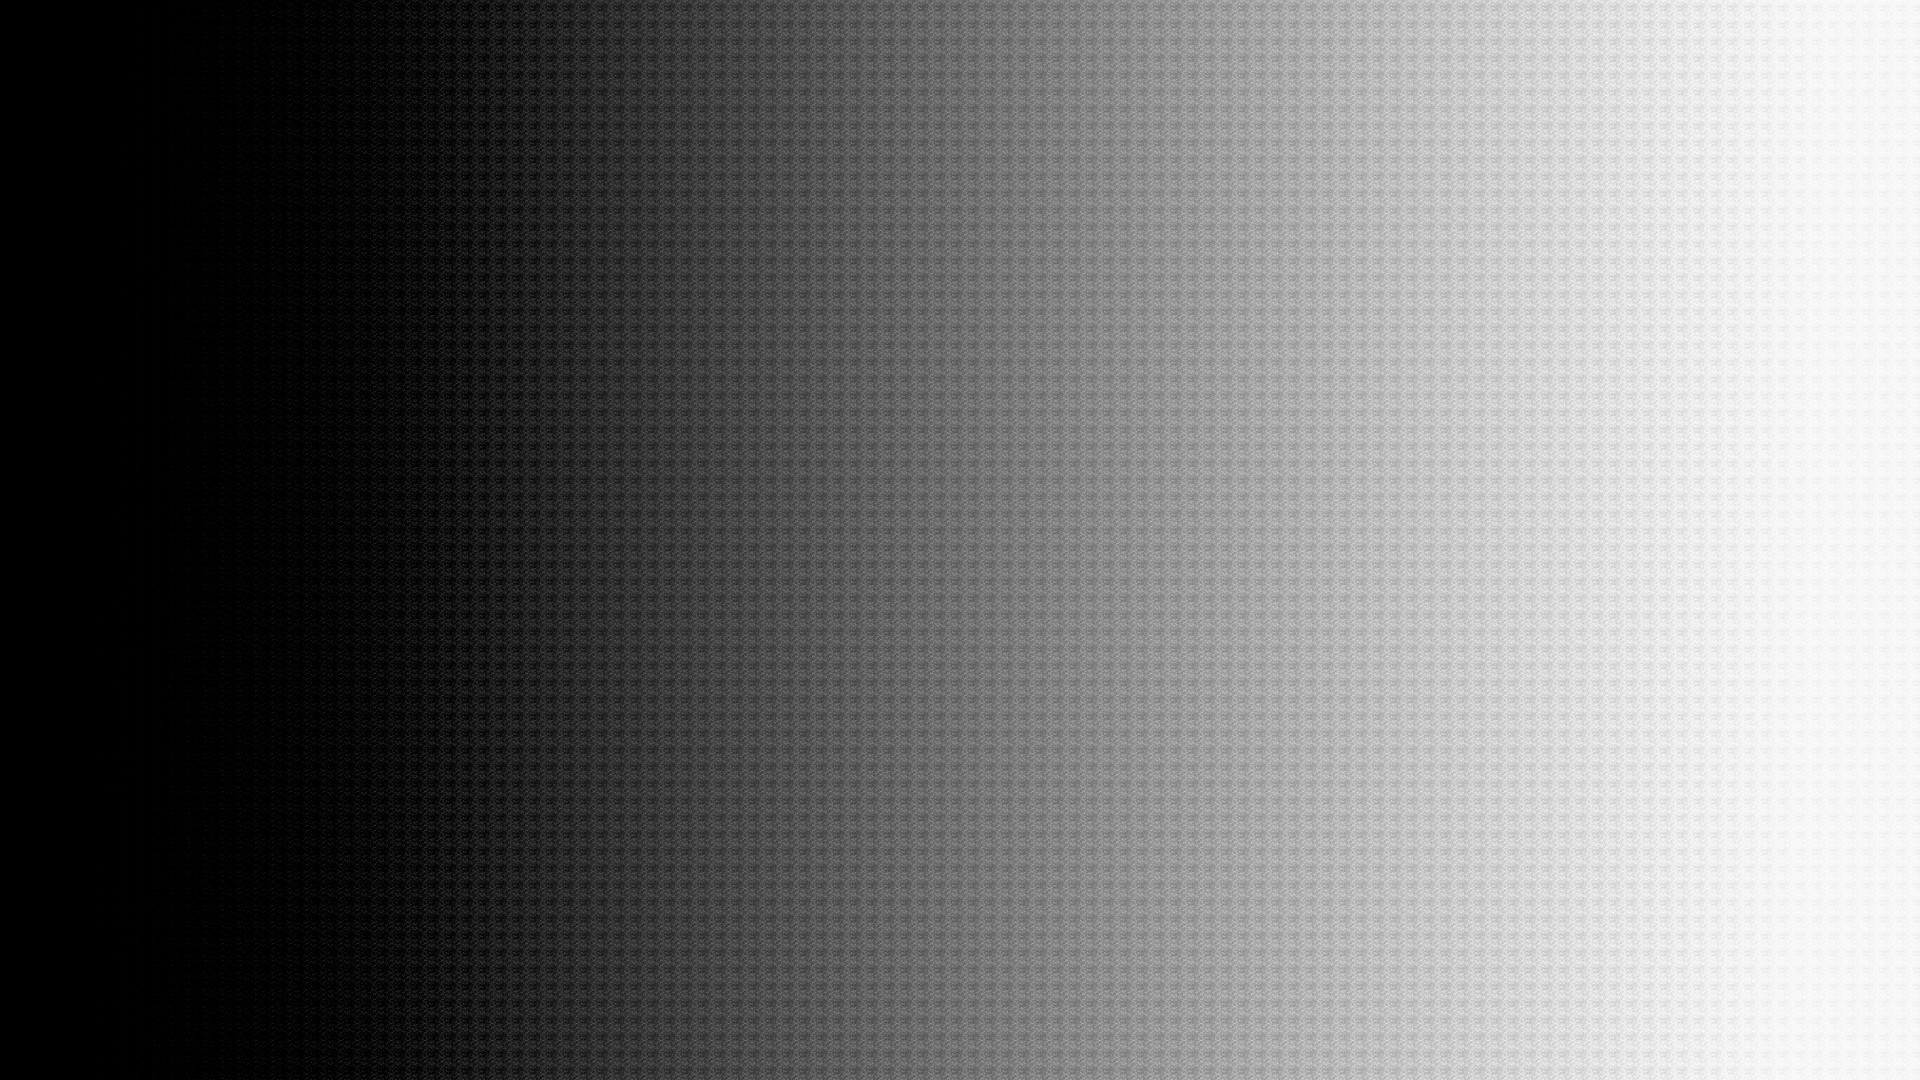 White Gradient Background Download Free Beautiful